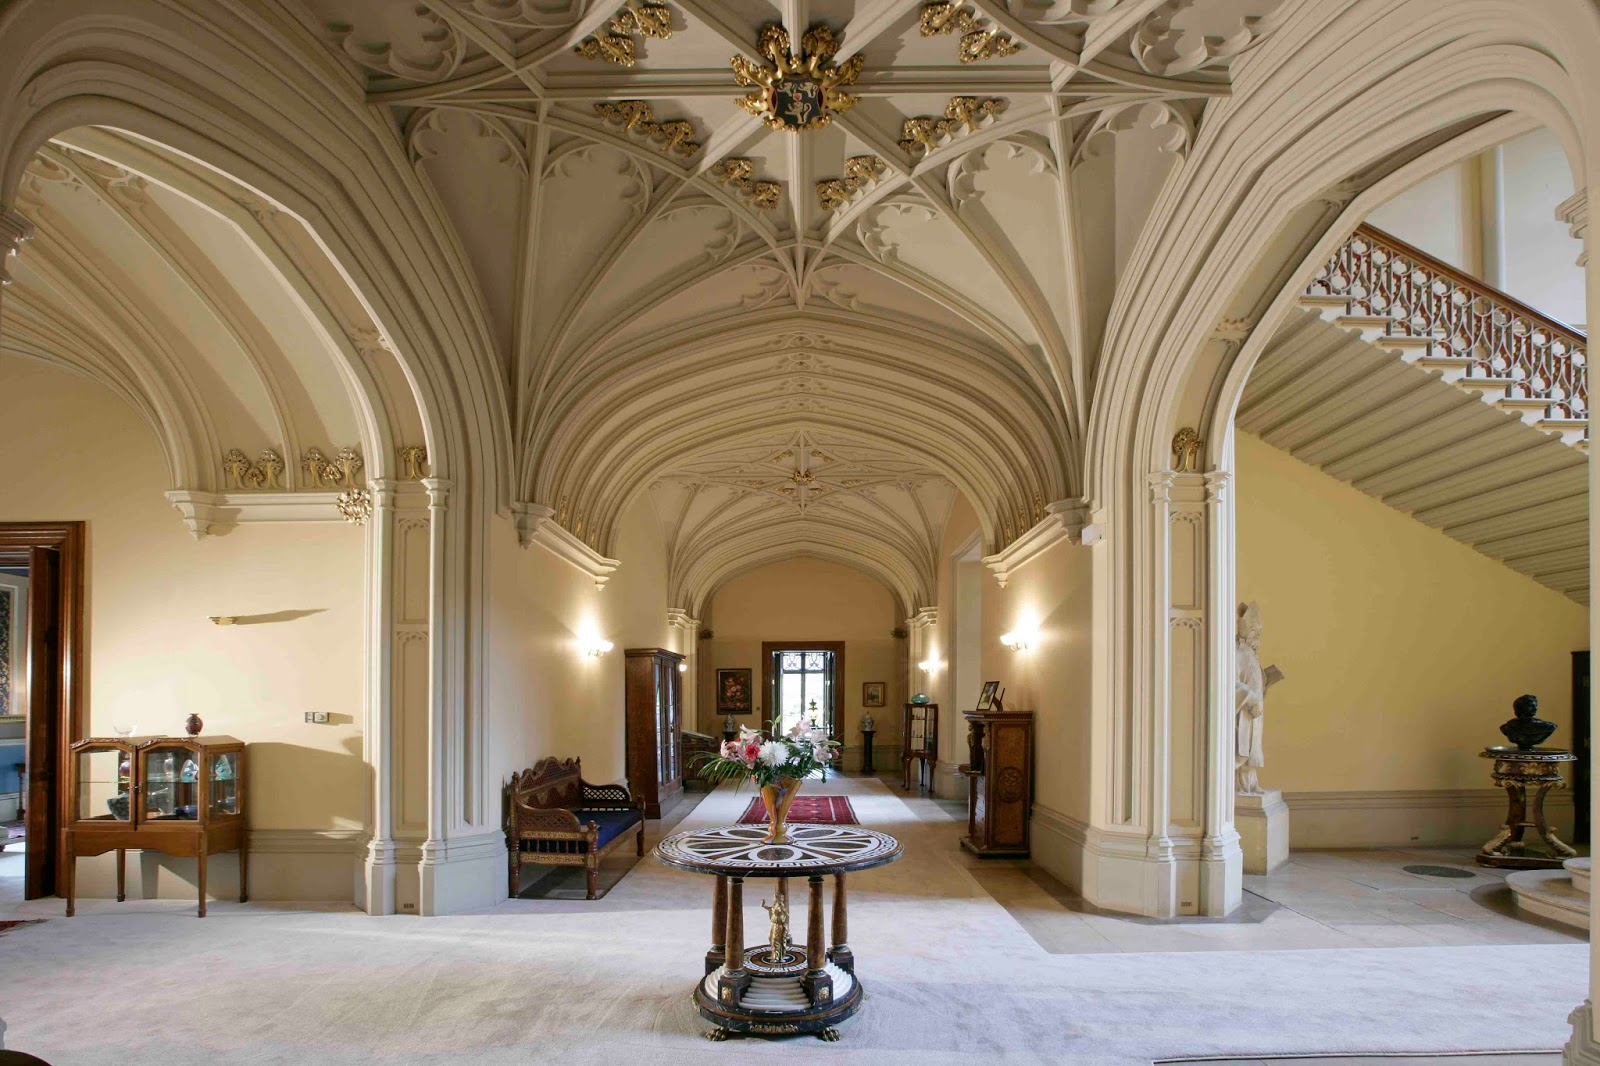 West Weddings Mamhead Estate A Wedding Venue With History And Charm